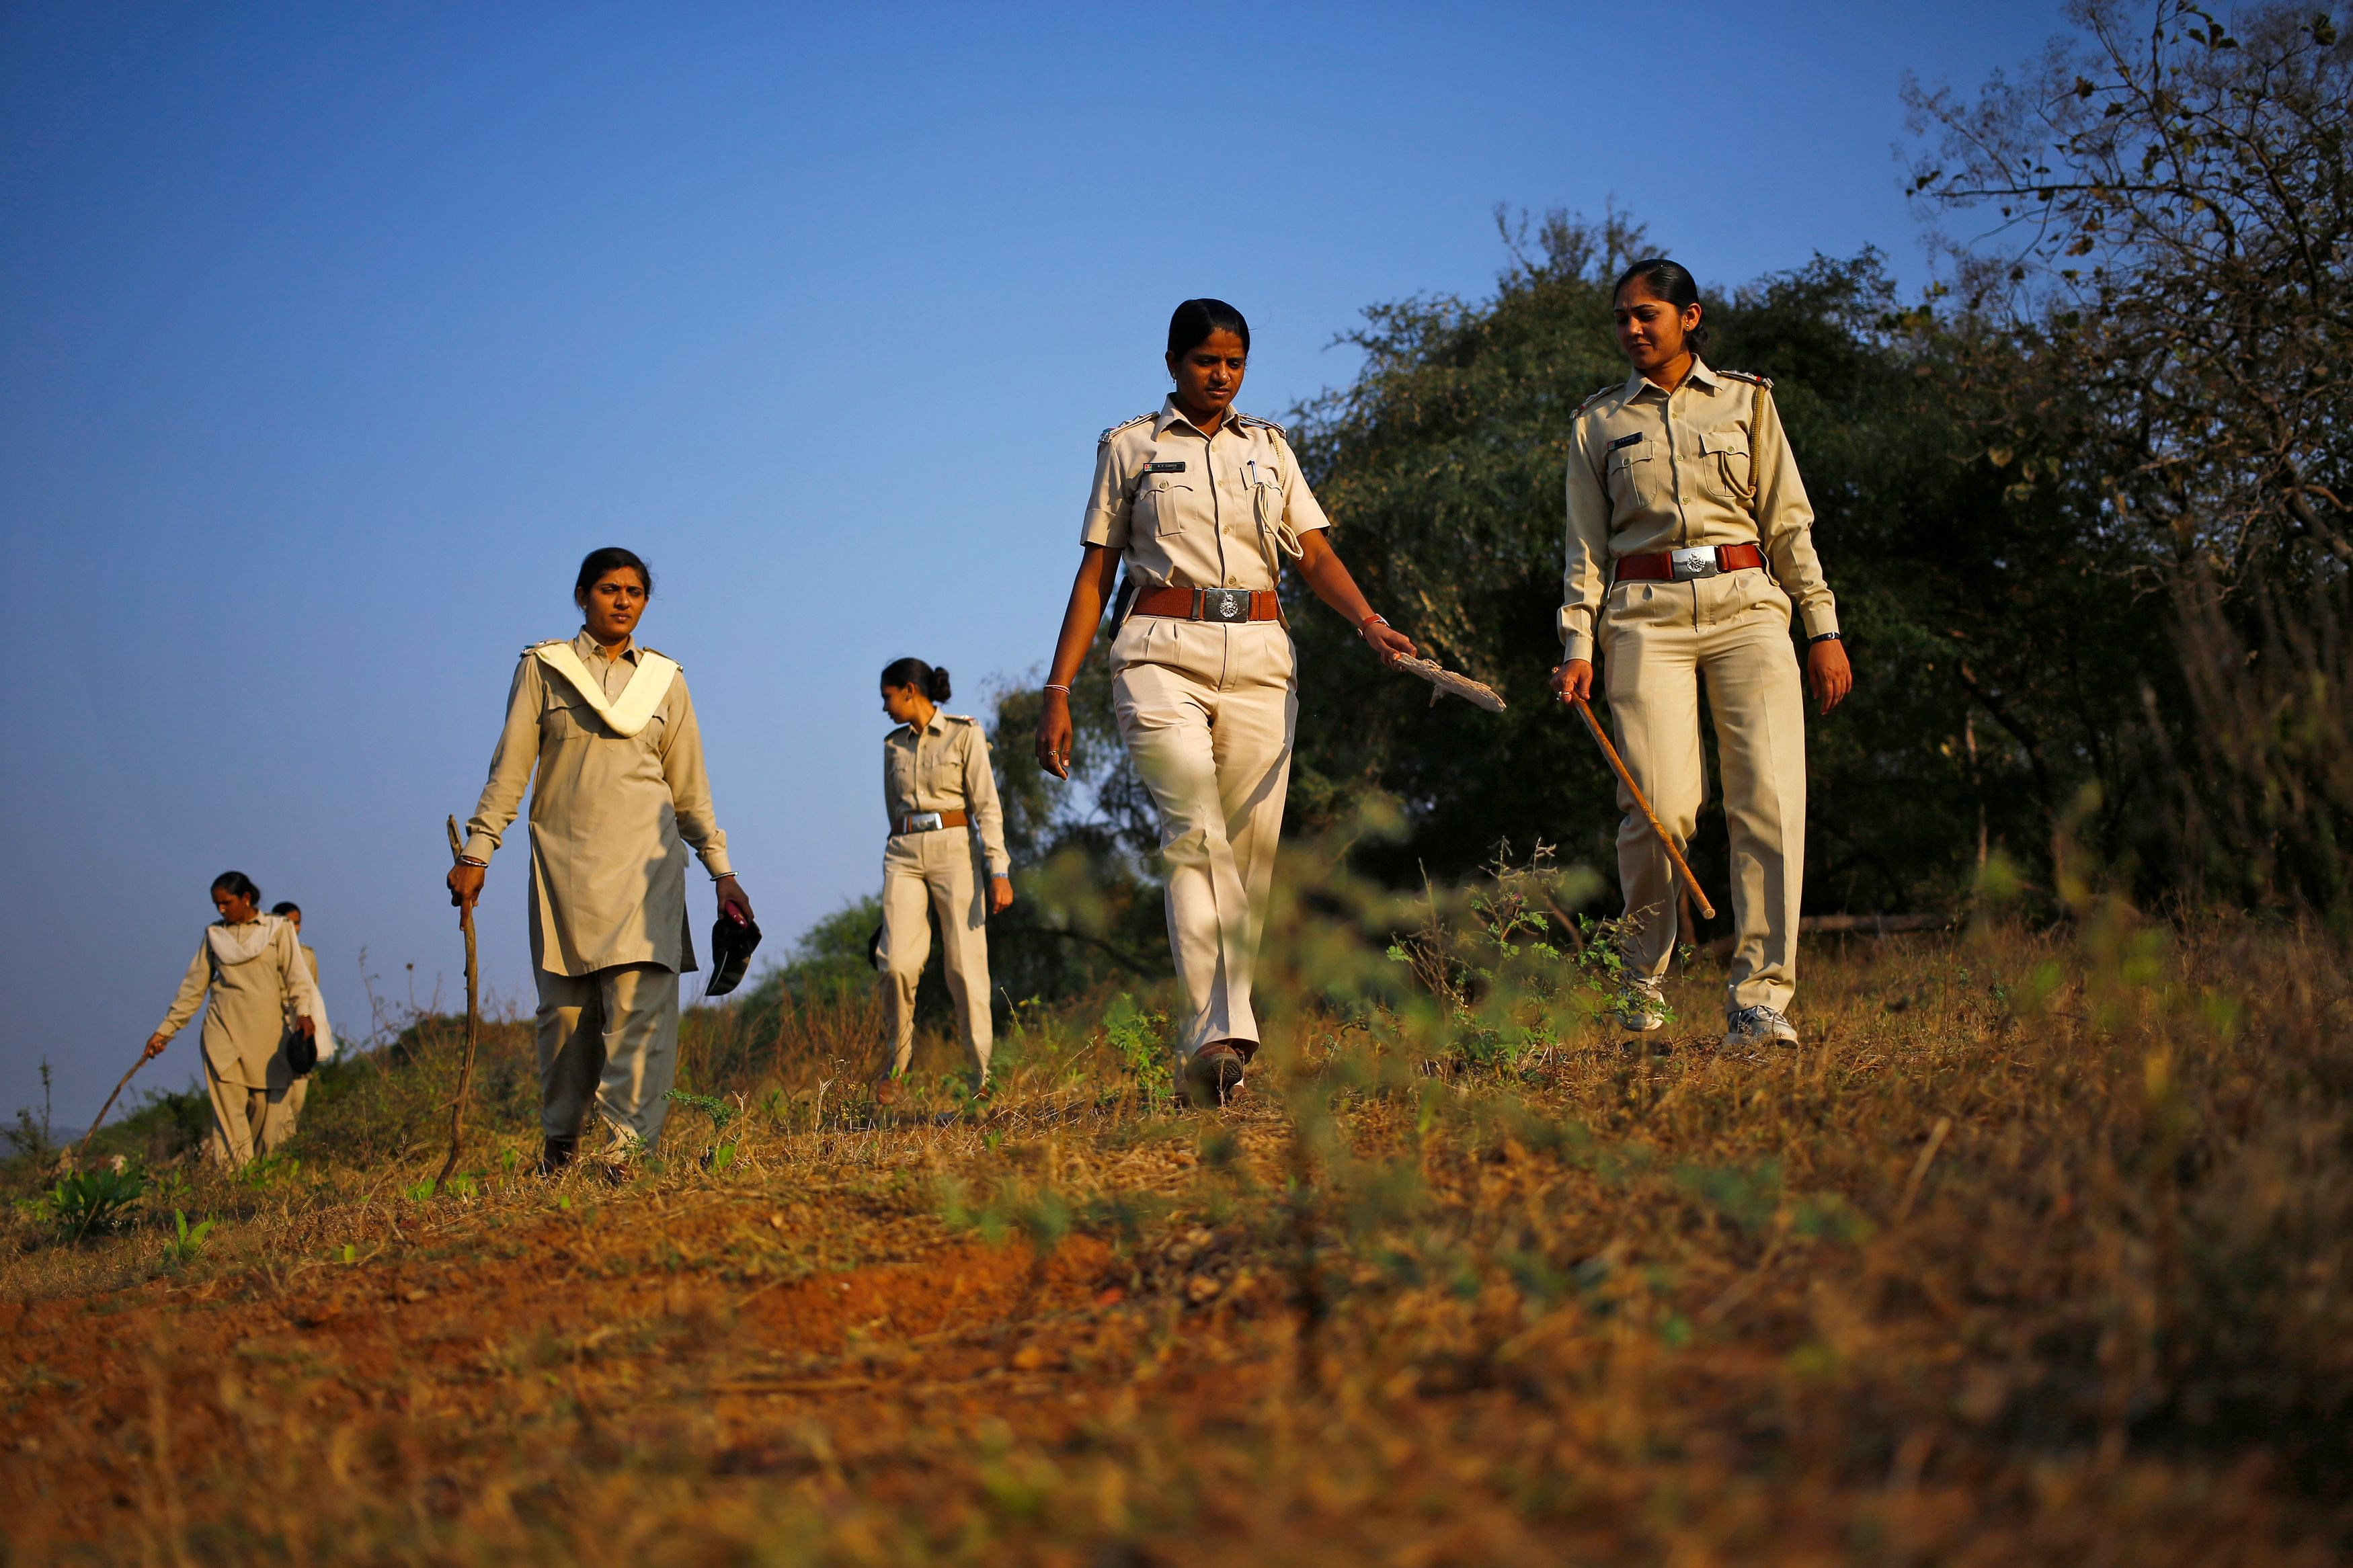 Forest guards carrying wooden sticks patrol the Gir National Park and Wildlife Sanctuary in Sasan, in the western Indian state of Gujarat December 1, 2014. The sanctuary, which is home to India's Asiatic lions, occupies an area of 1,412 square km and employed female guards, for the first time in the country, back in 2007. According to one of the female guards, they earn a monthly salary of around $148 for working almost 12 hours a day, six days a week. Picture taken December 1, 2014. REUTERS/Anindito Mukherjee (INDIA - Tags: ANIMALS ENVIRONMENT SOCIETY BUSINESS EMPLOYMENT) - RTR4H8SB